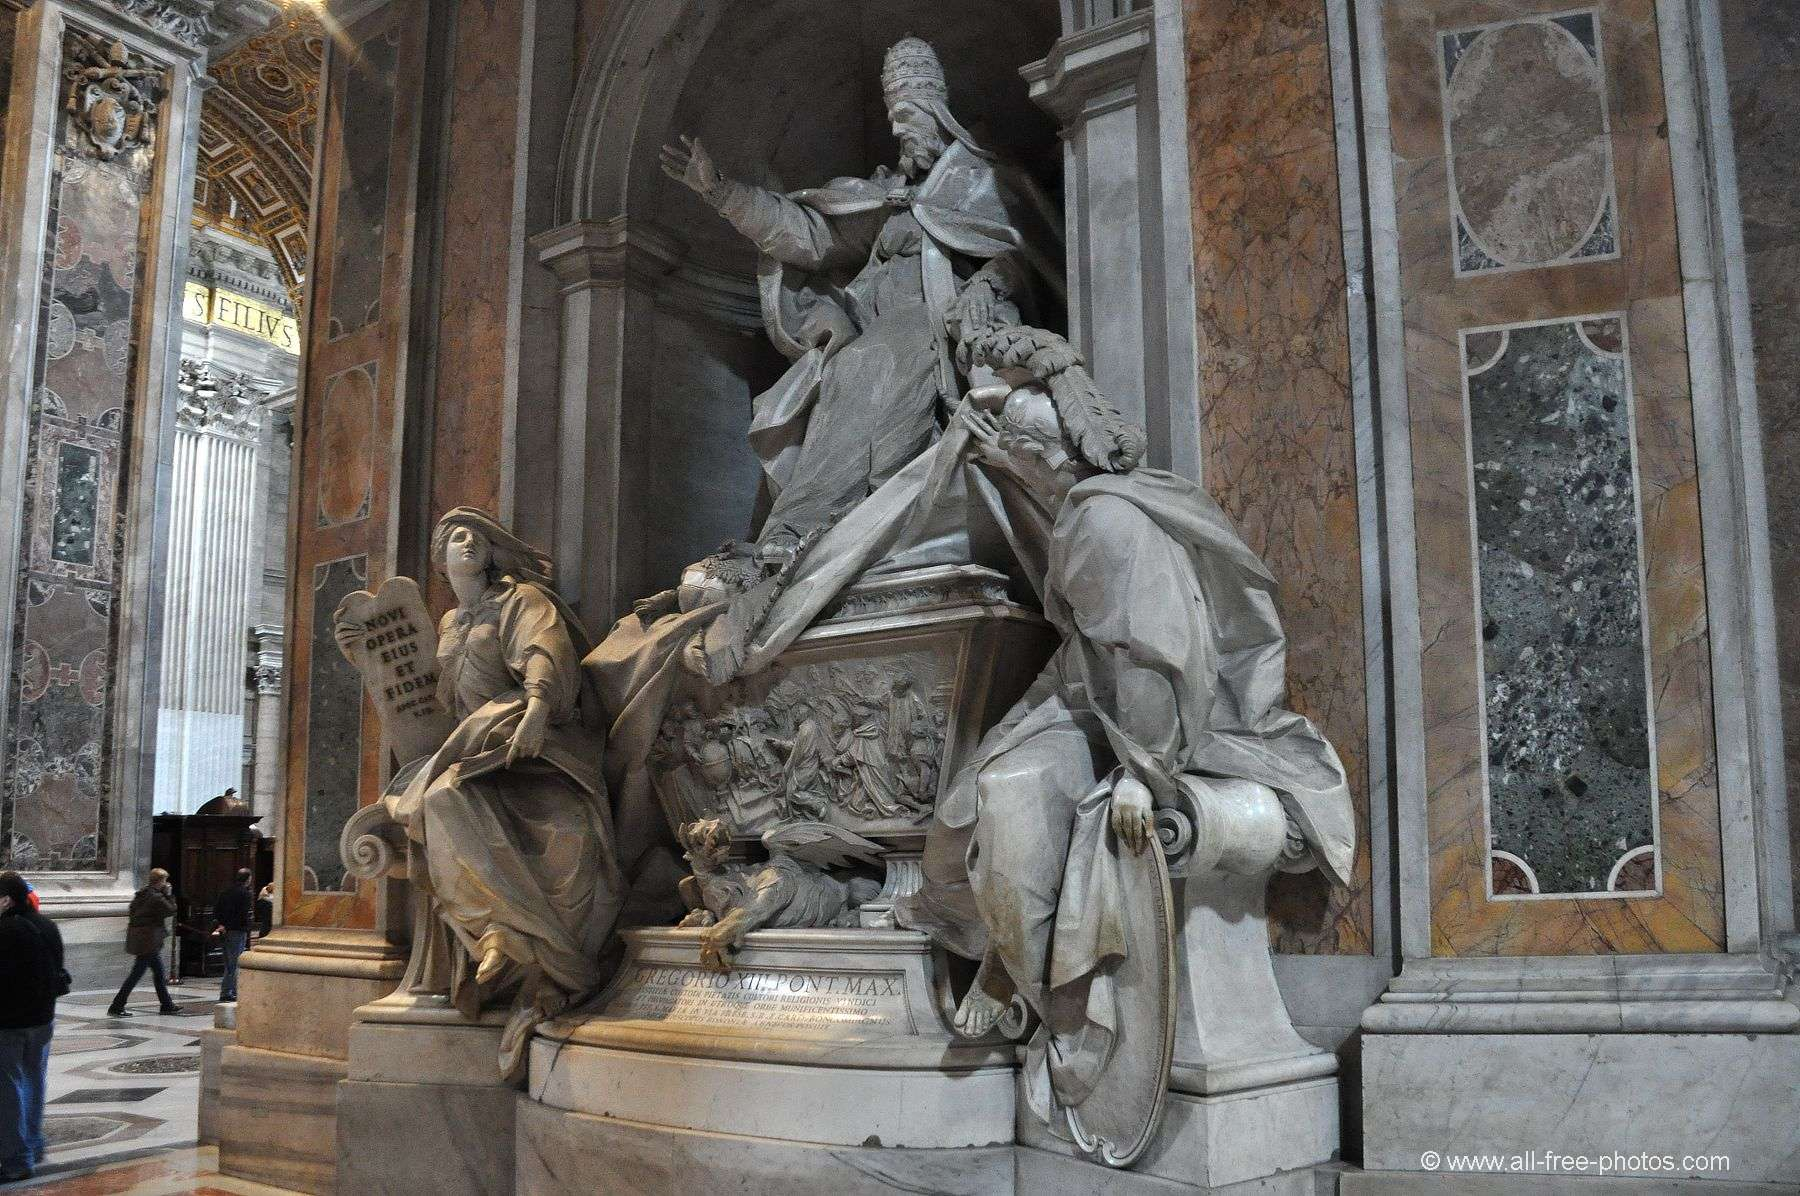 Pope Gregory XIII - St. Peter's Basilica - Vatican